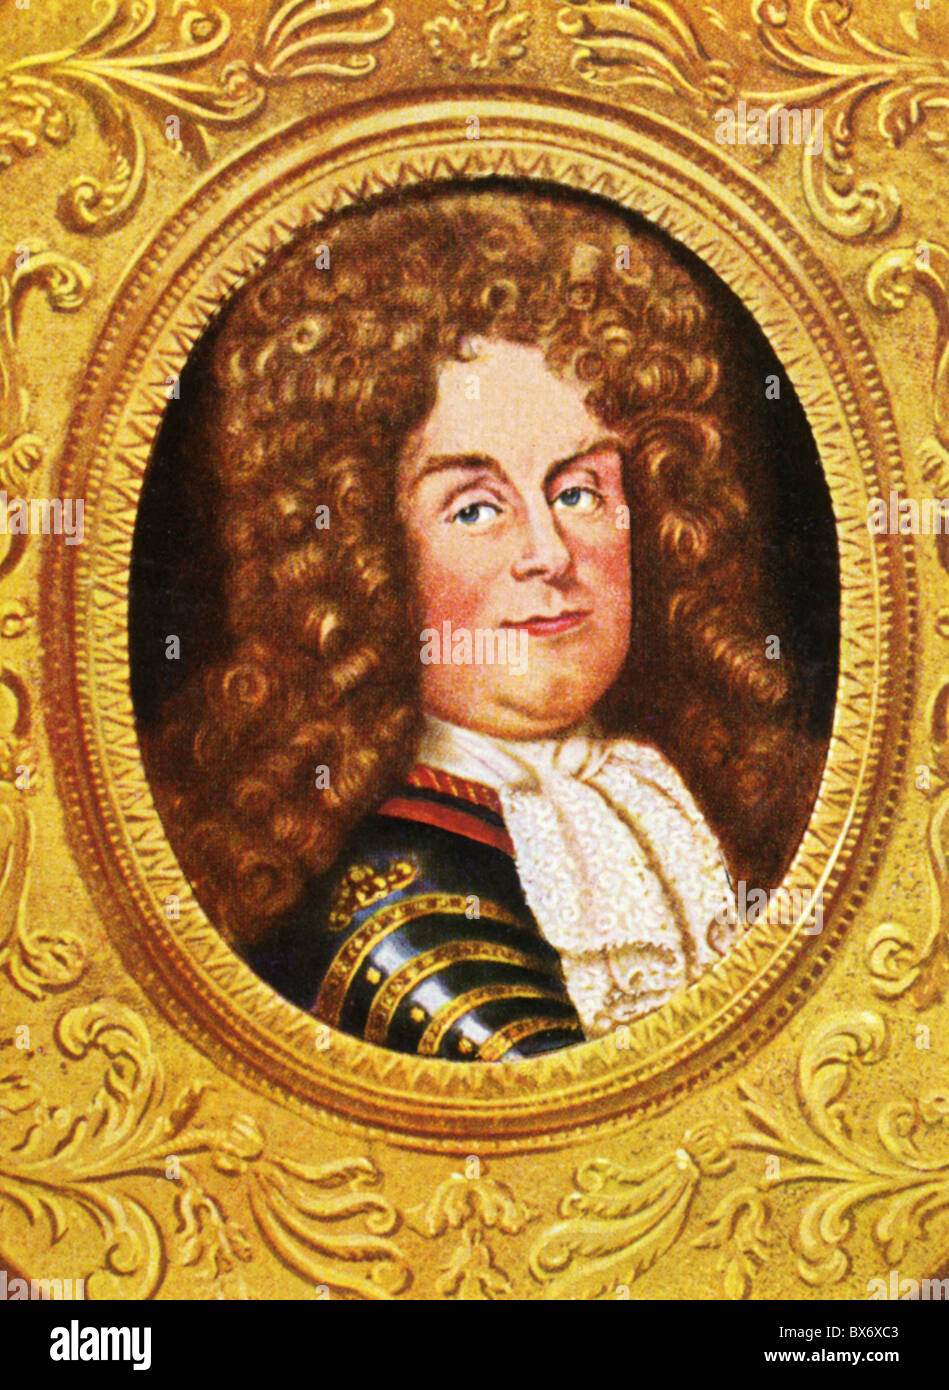 Philip II, 4.8.1674 - 2.12.1723, Duke of Orleans, Regent of France 1715 -  1723, portrait, print after miniature, 18th century, cigarette card,  Germany, ...